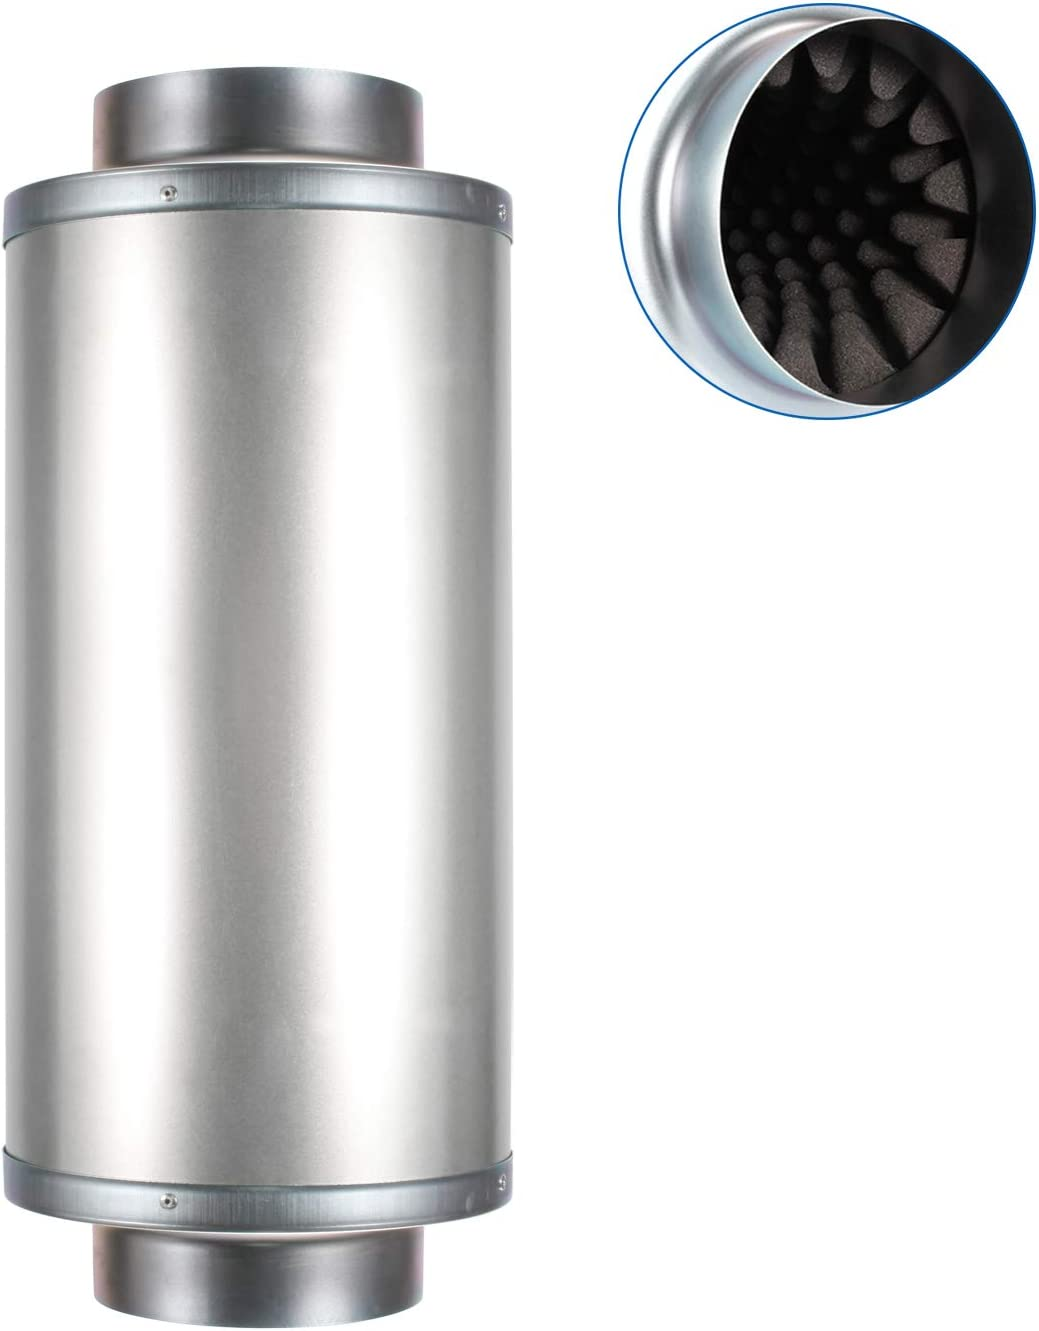 Hon&Guan 6 Inch Duct Silencer, Noise Reducer Hose Silencer for Inline Duct Fan in HVAC System